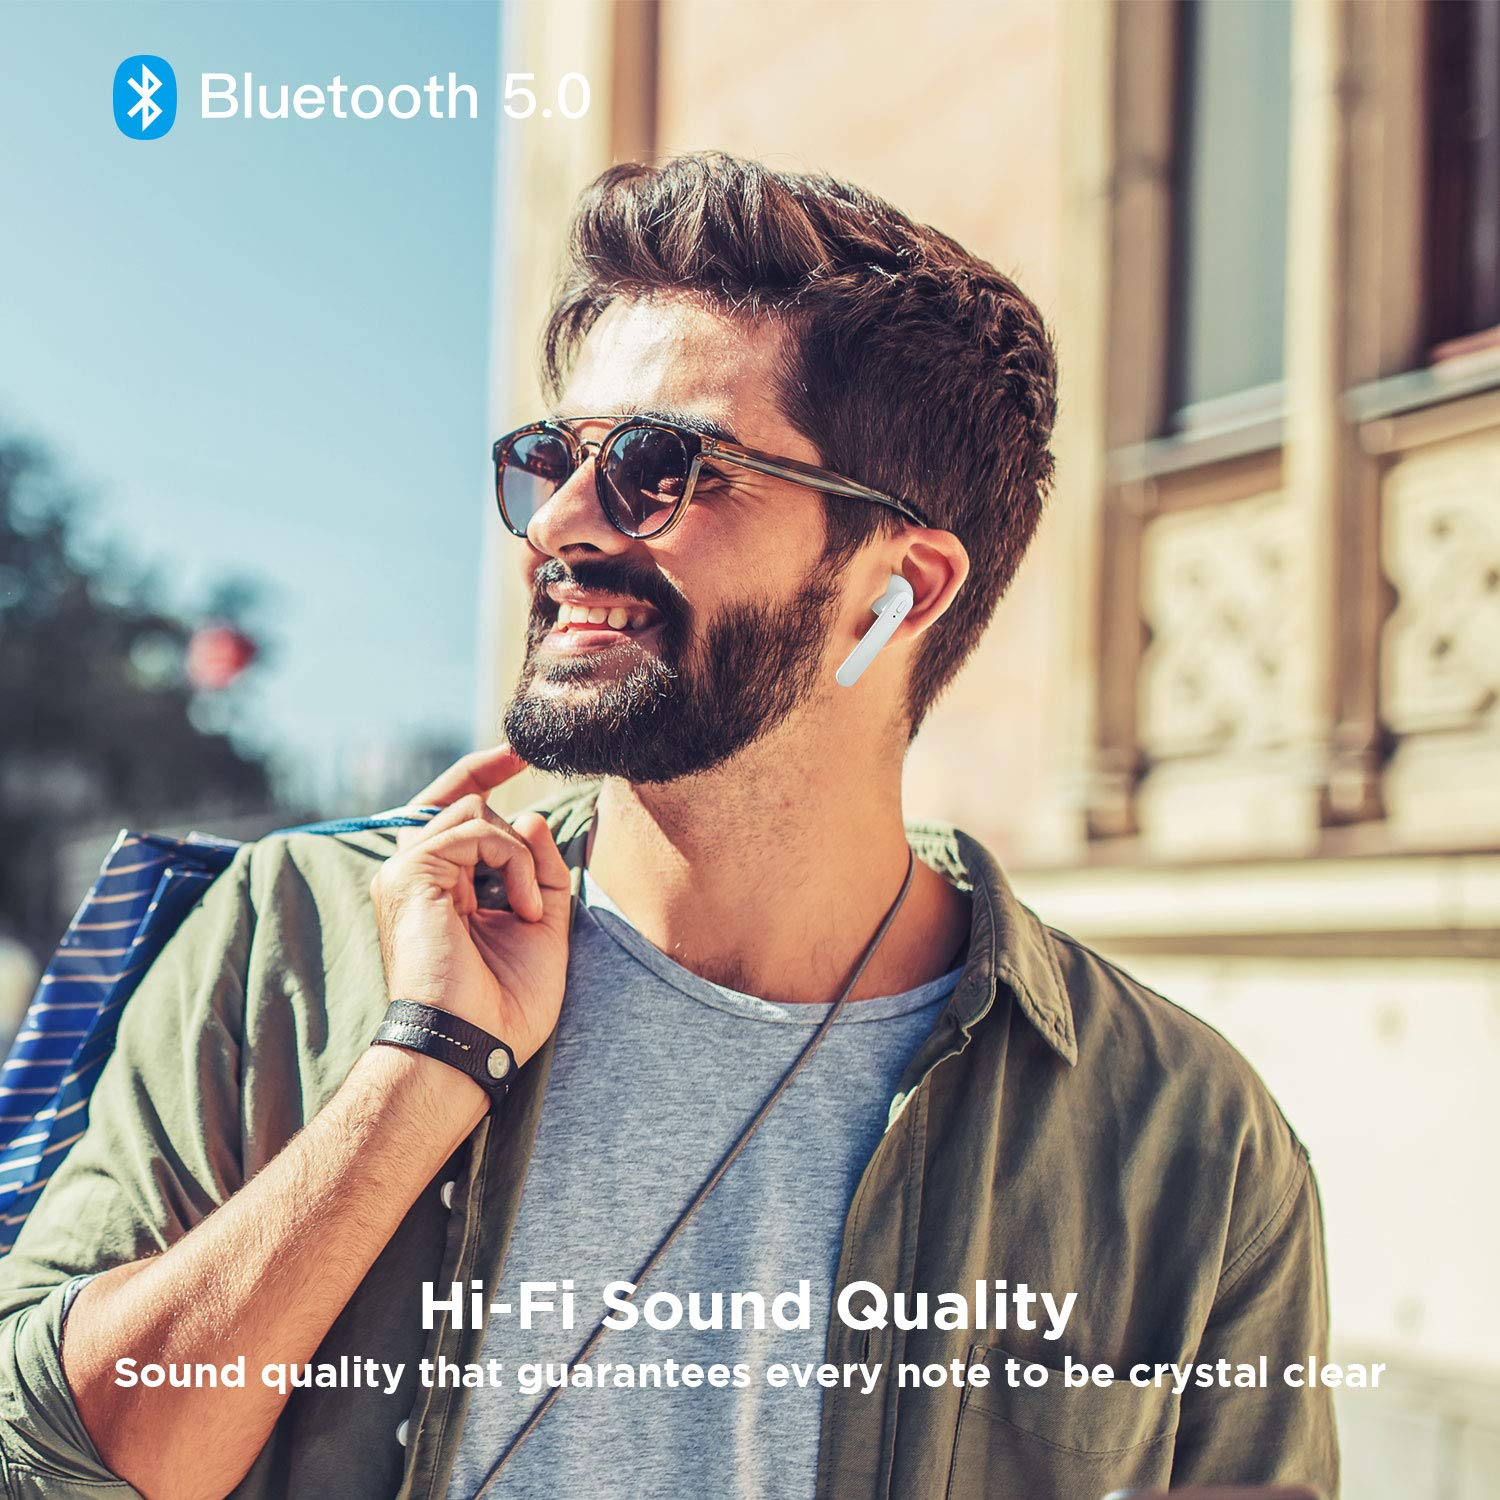 Wireless Earbuds, Letsfit Bluetooth 5.0 Headphones True Wireless HD Stereo Sound Earbuds, in-Ear Headset 30h Playtime with Built-in Microphone Portable Charging Case